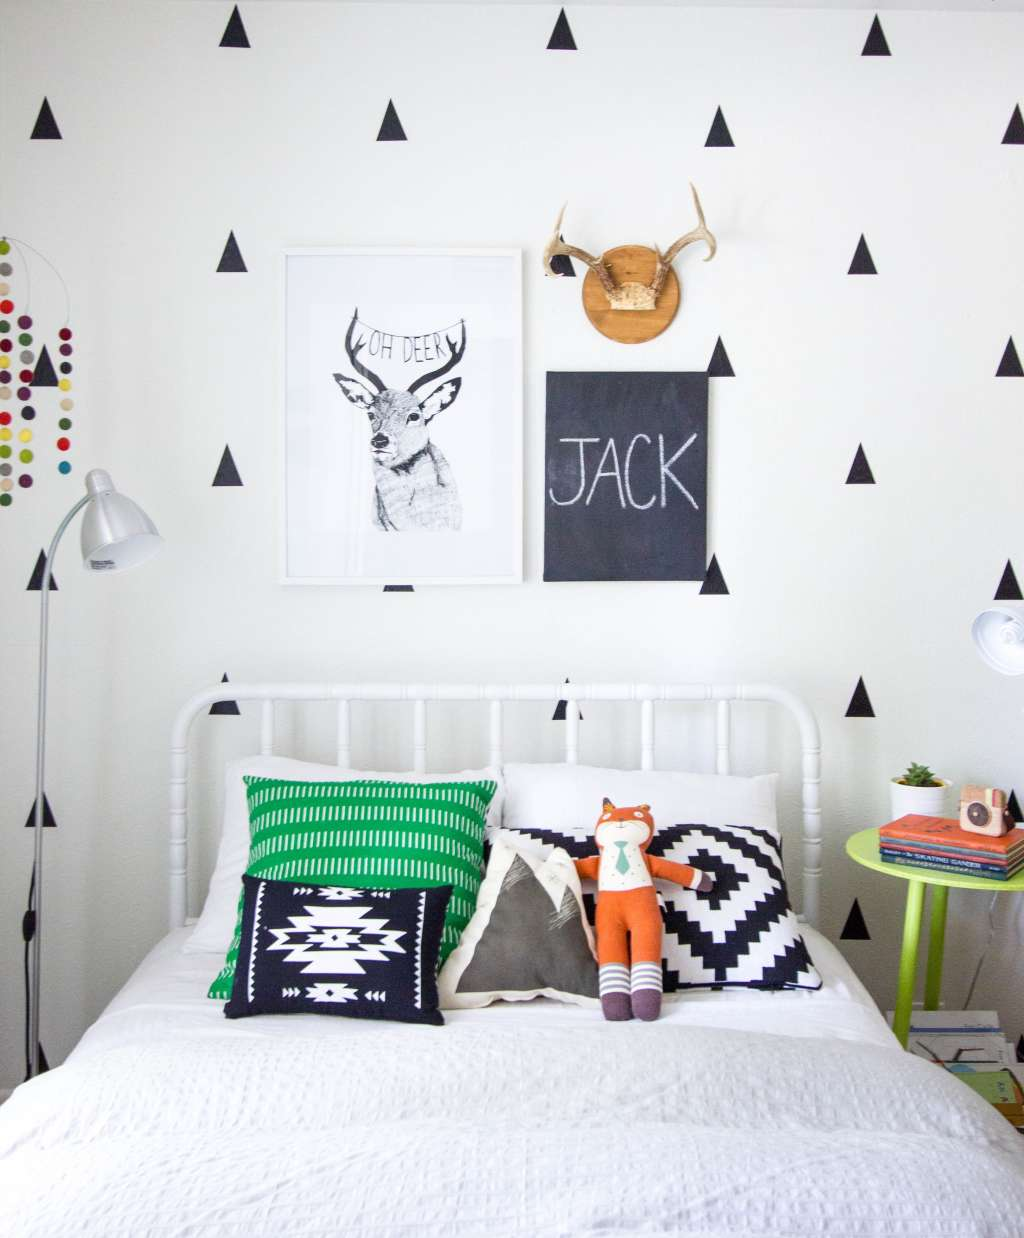 Trendy Kids Decor on a Budget: Black-on-White Wall Decals